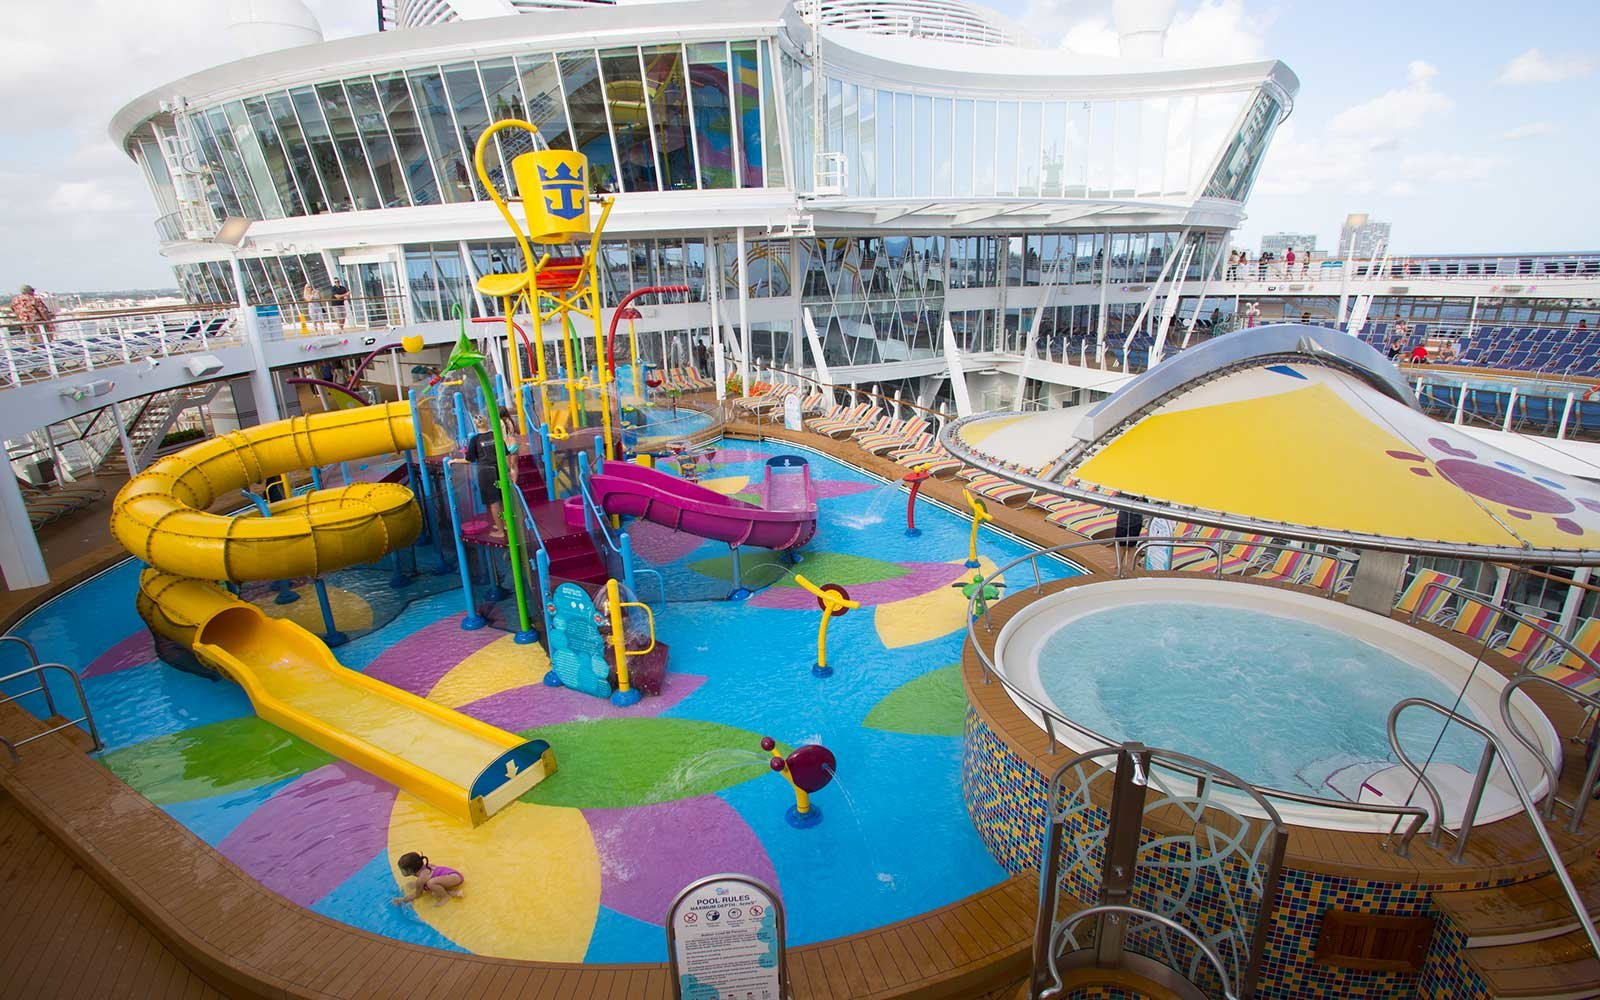 CRUISE: Royal Caribbean International Harmony of the Seas